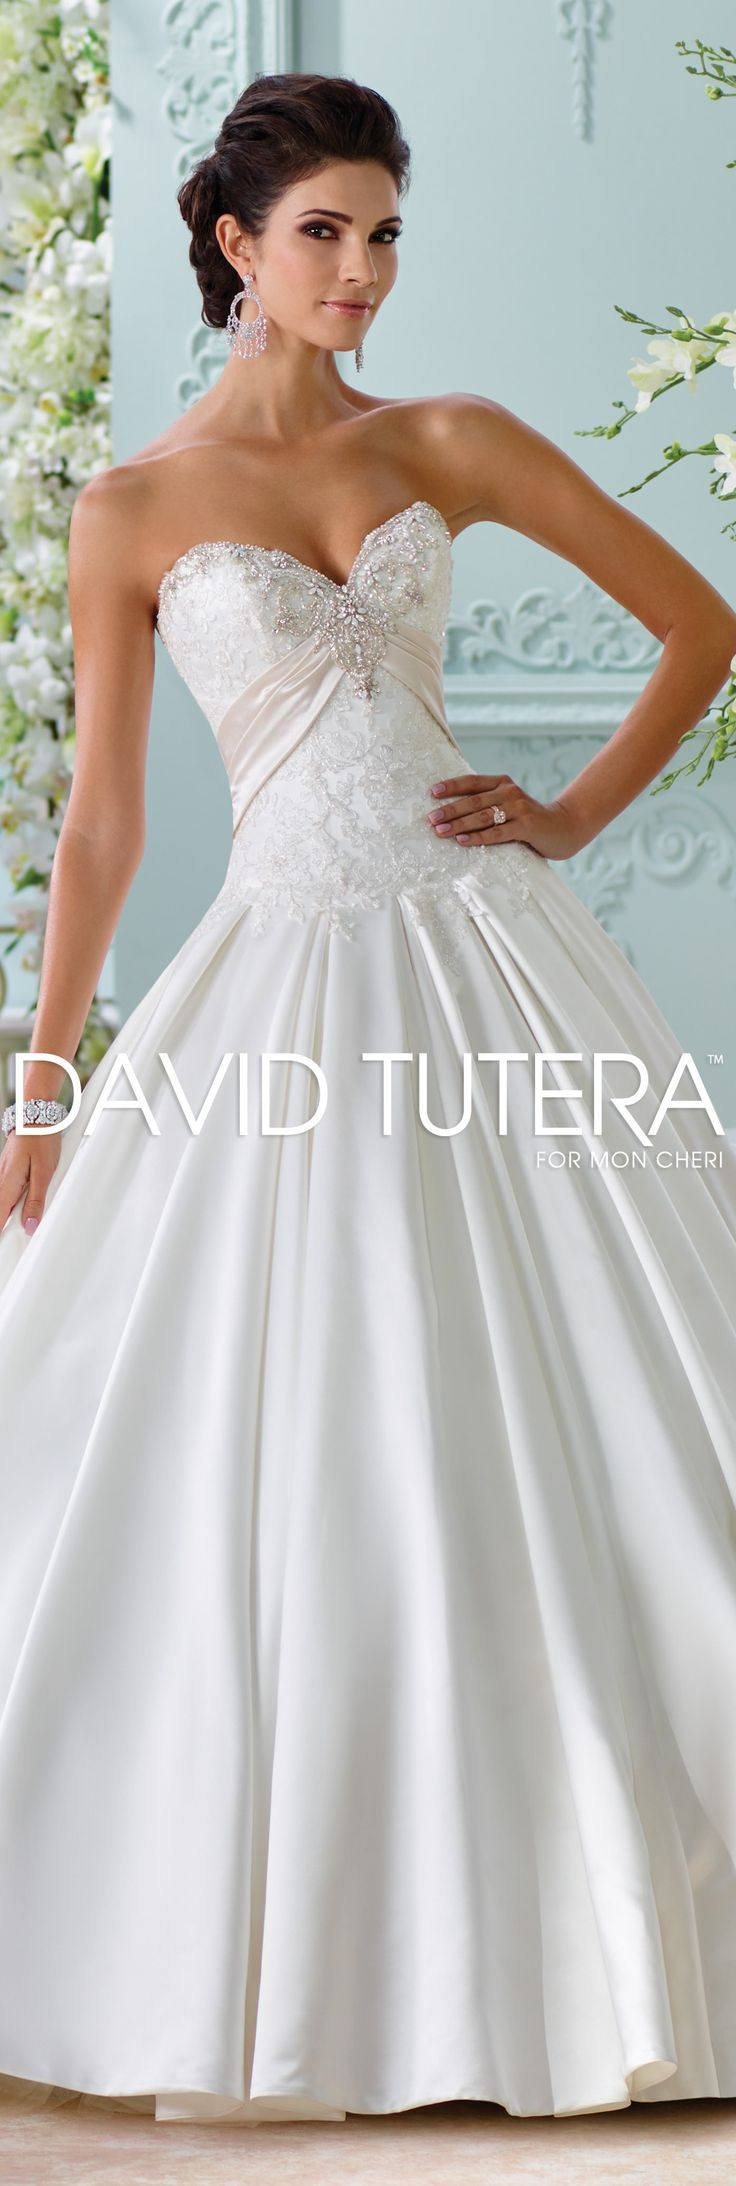 Best David Tutera Ideas On Pinterest Princess Wedding